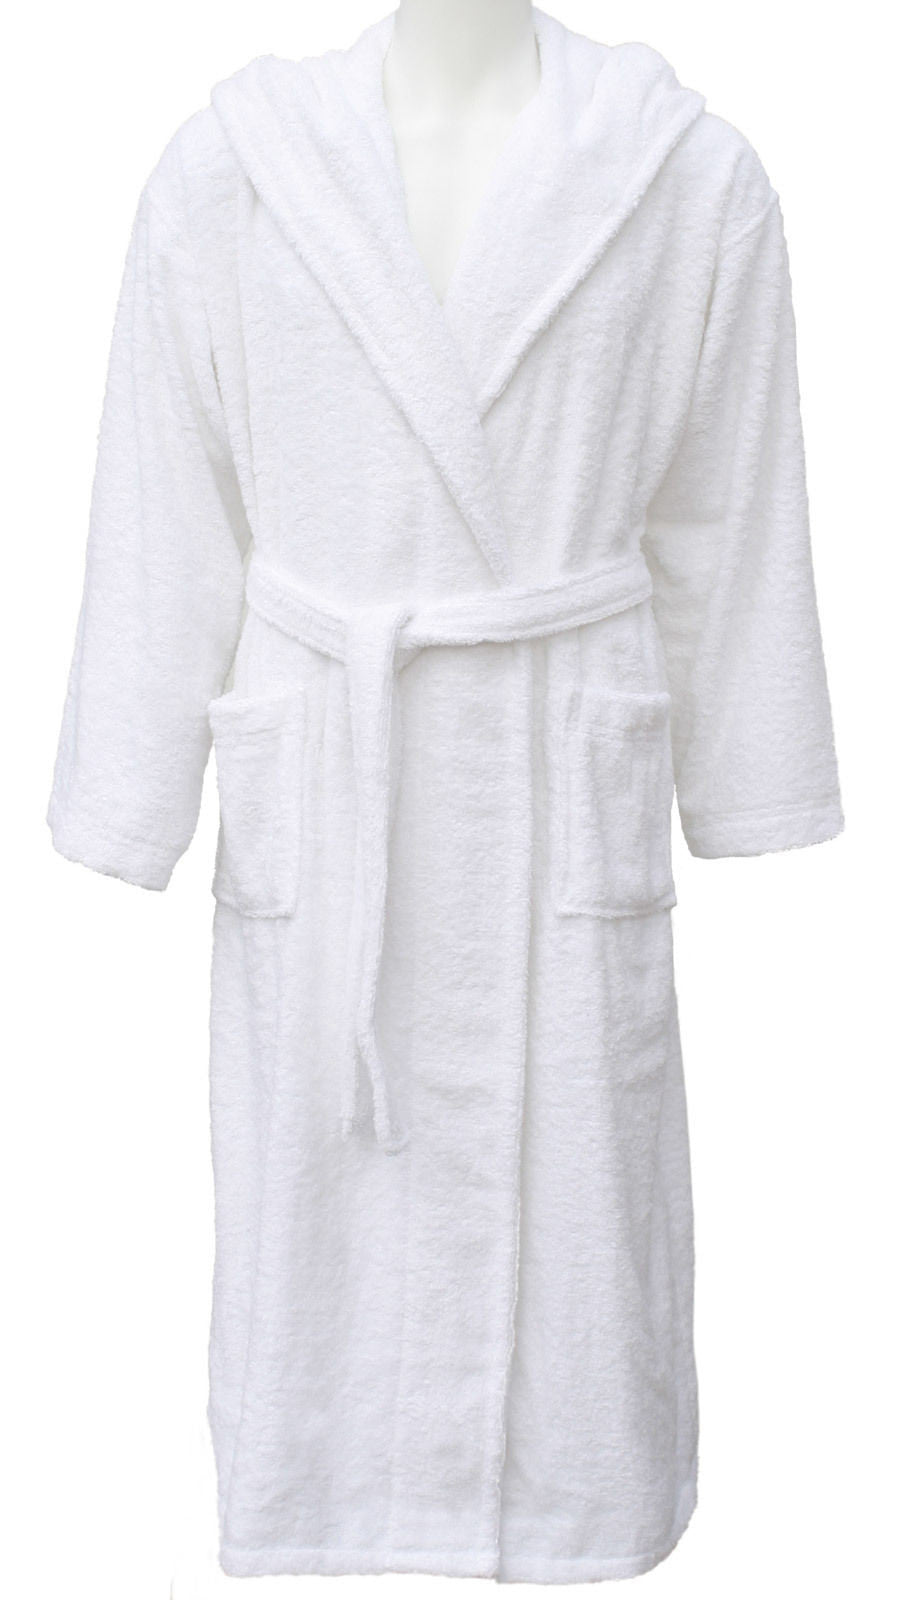 100% Cotton Combed Terry Towelling Bathrobe Dressing Gown Mens ...